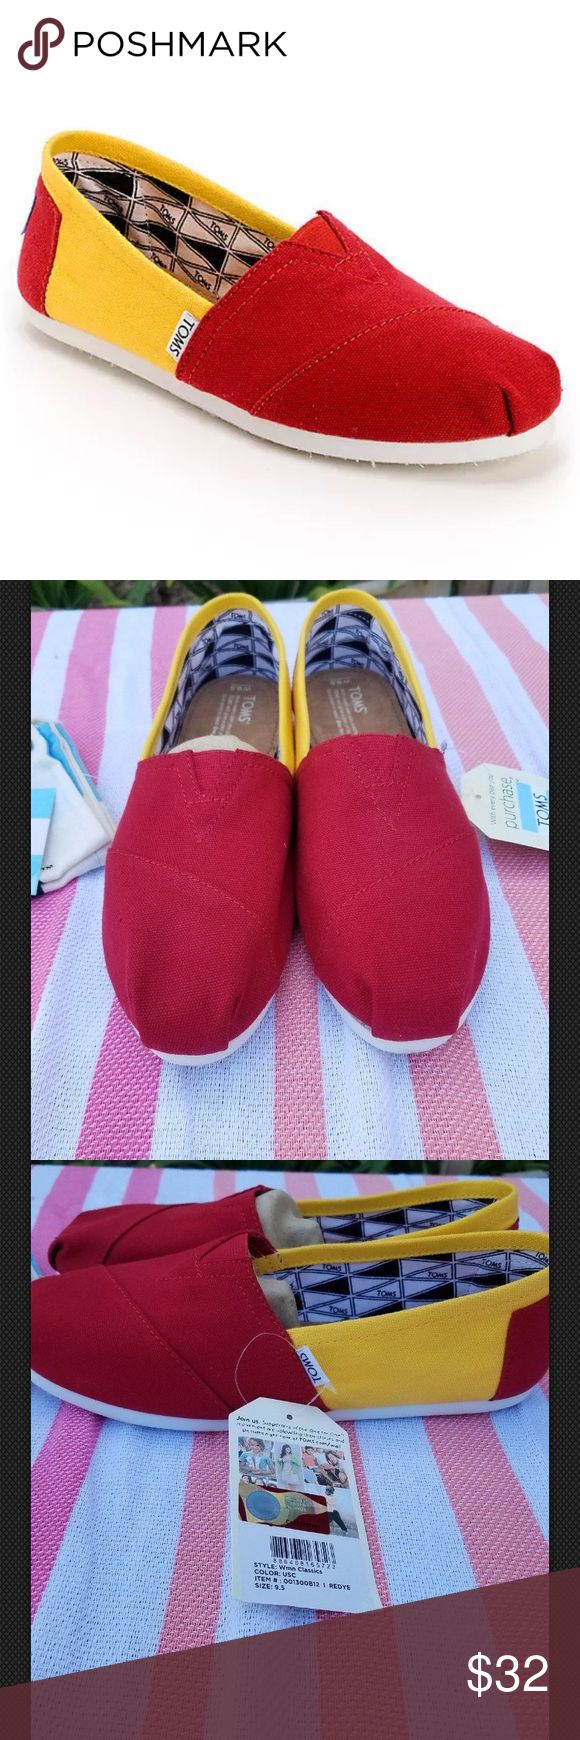 "Toms Women's Campus Classics USC Slip ons shoes Toms Women's Campus Classics USC Slip ons shoes      Color yellow/red  Size 9.5    NEW WITH OUT BOX.  Store display models. With out box, dust bag included. See all photos.     width 3 1/2"" sole length 10 1/2"" insole length 10 1/2""    	•	Toms Classics girls slip on shoes. 	•	University of Southern California colorway. 	•	Cardinal and gold upper. 	•	Lightweight canvas construction. 	•	Elastic V on top for easy in and out. 	•	Suede footbed for…"